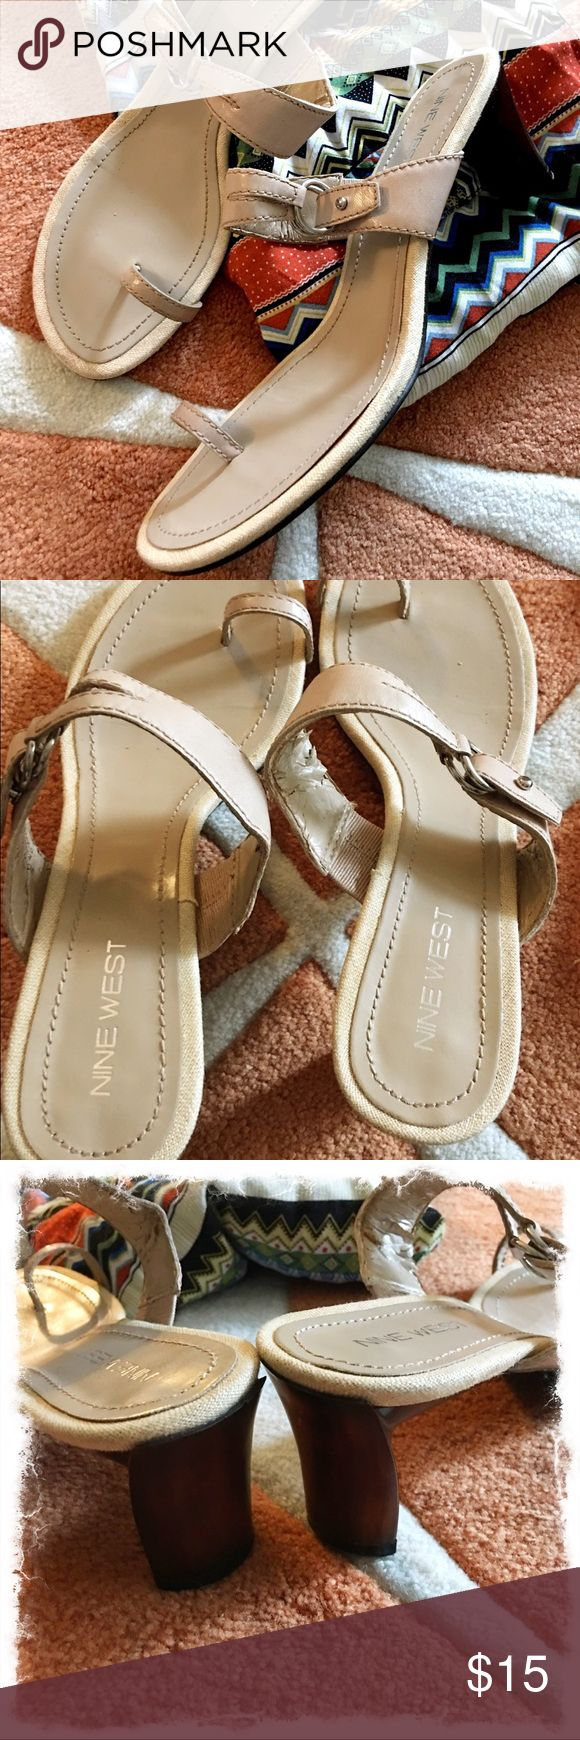 """NINE WEST Tan Sandals Cute, strappy sandals with silver clasp. Toe strap and brown wooden heel.  Leather.  Slight wear underneath top strap that is not visible when wearing. Very comfortable.  2"""" heel. Sz 7.5 Nine West Shoes"""